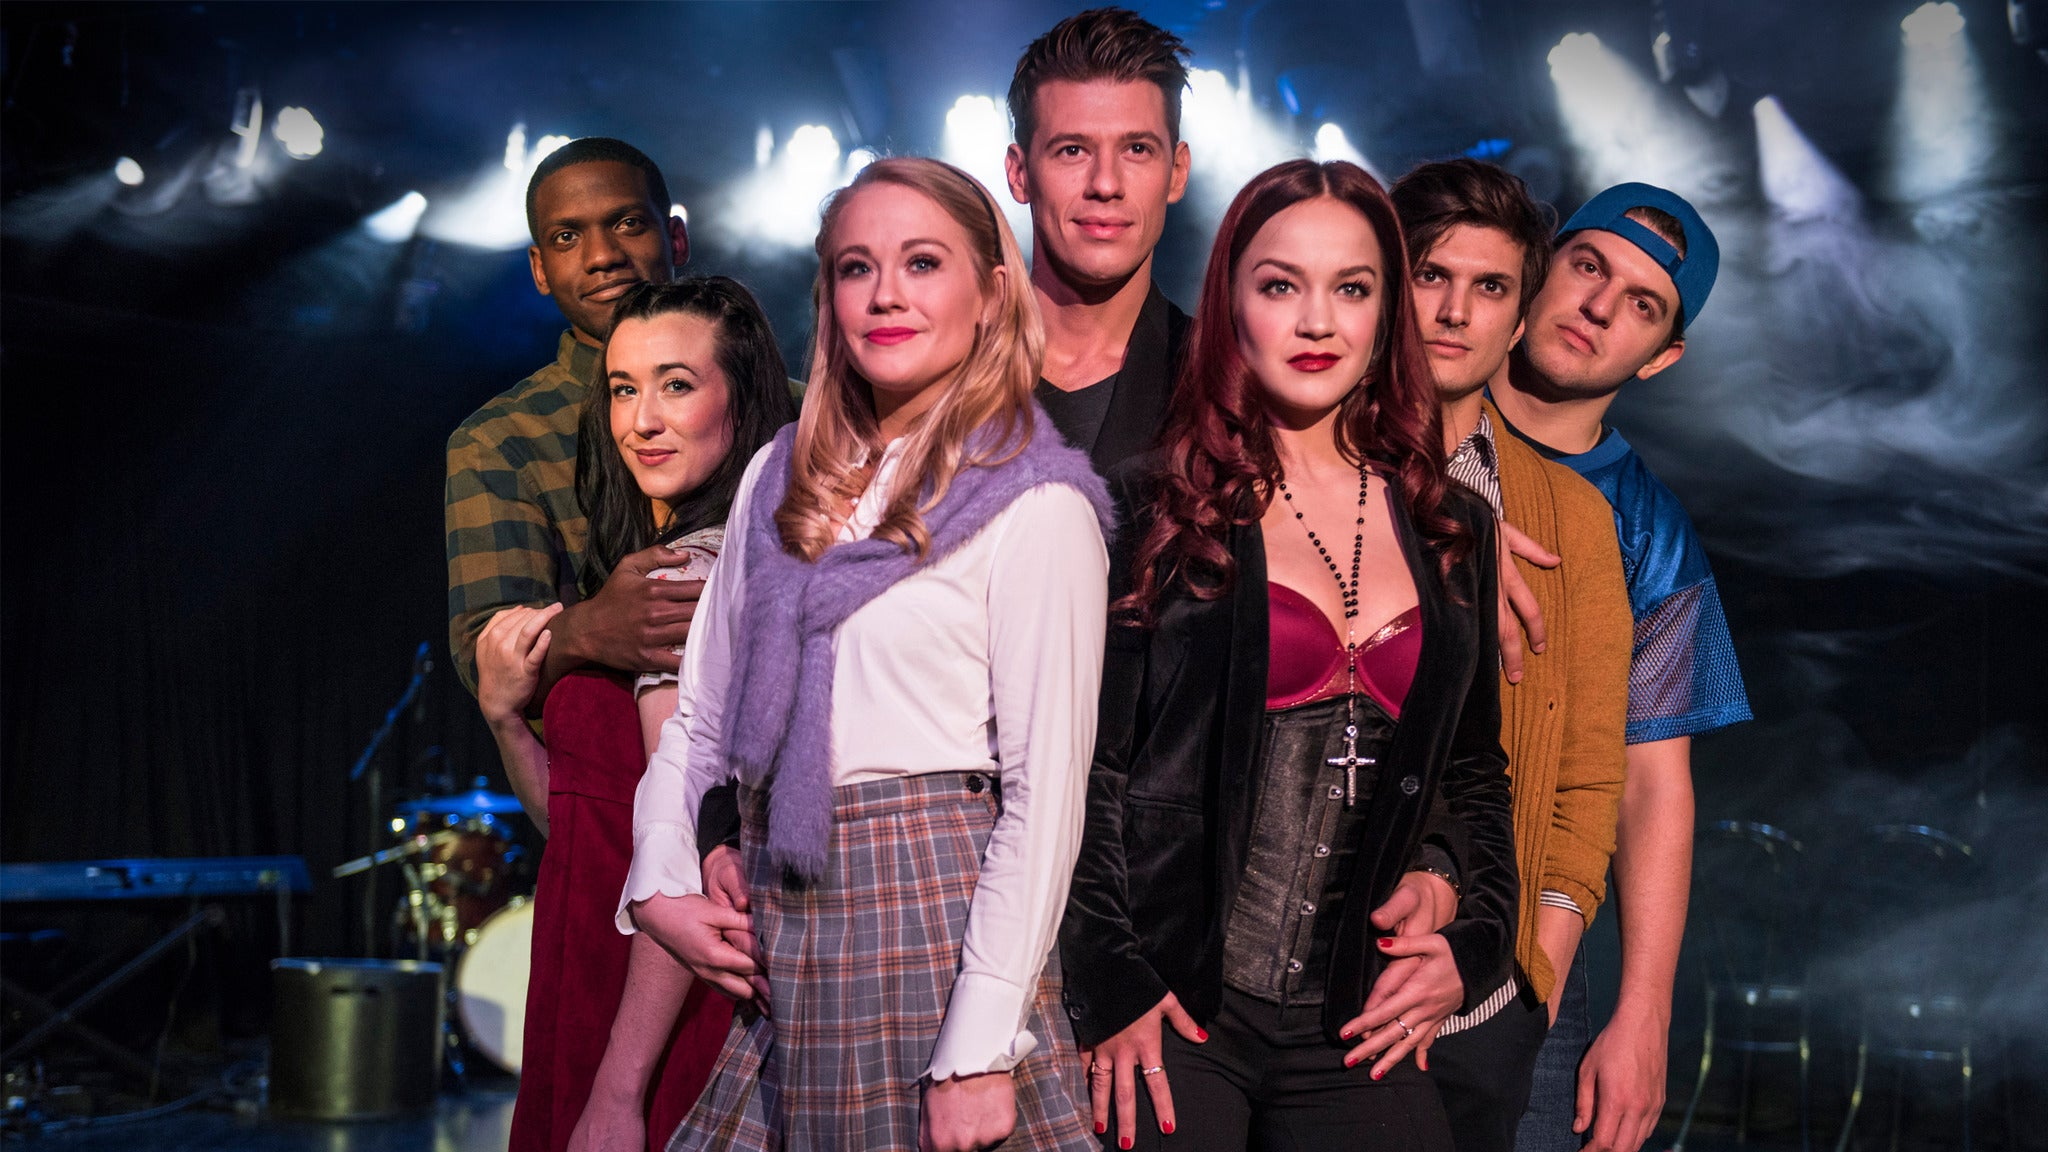 Cruel Intentions: The 90s Musical (Chicago) at Shank Hall - Milwaukee, WI 53202